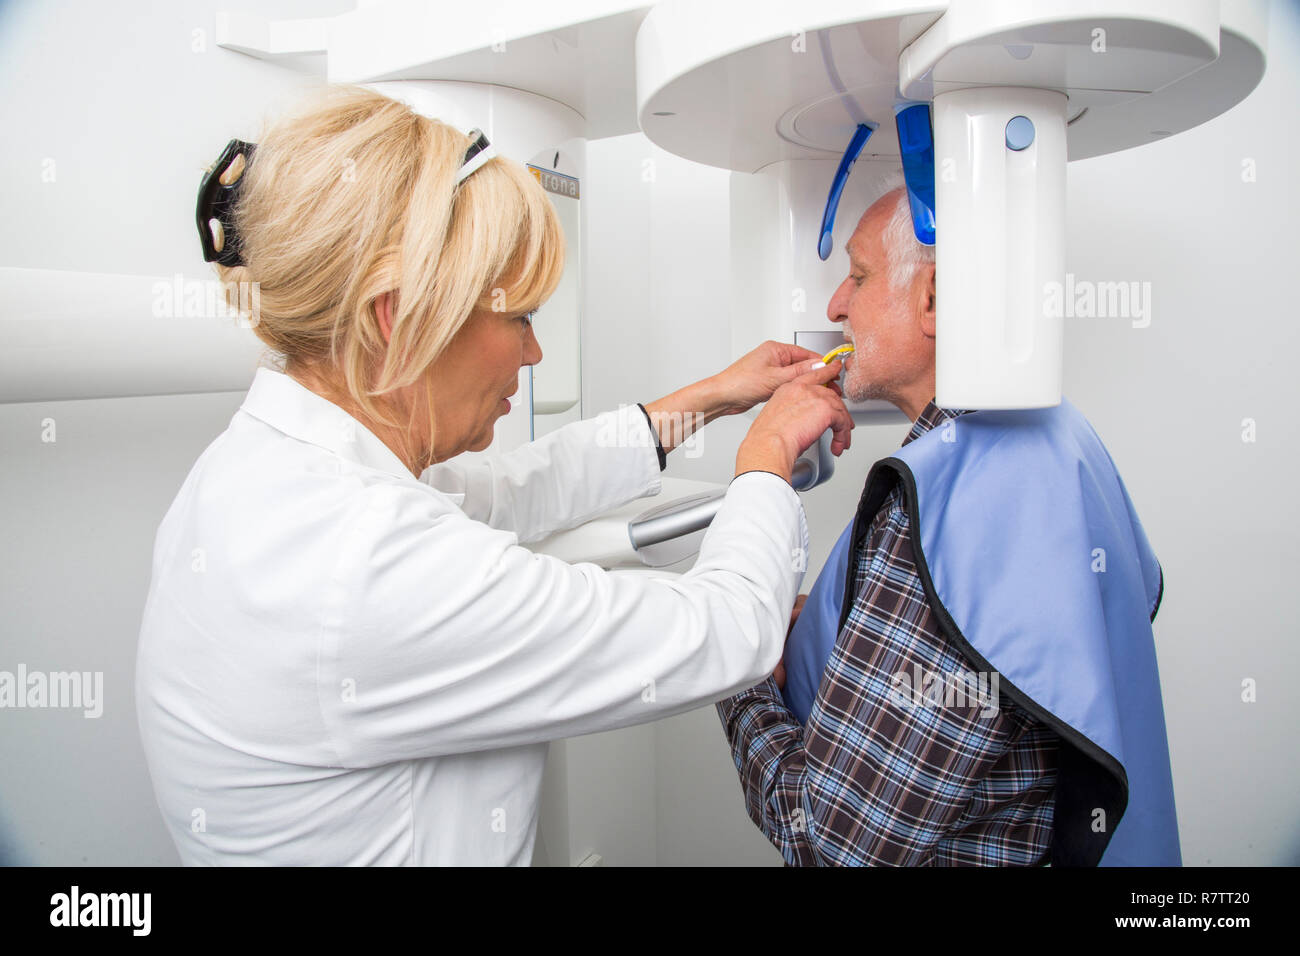 Man being prepared for an X-ray of his teeth, wearing a lead vest for protection from radiation, Germany - Stock Image